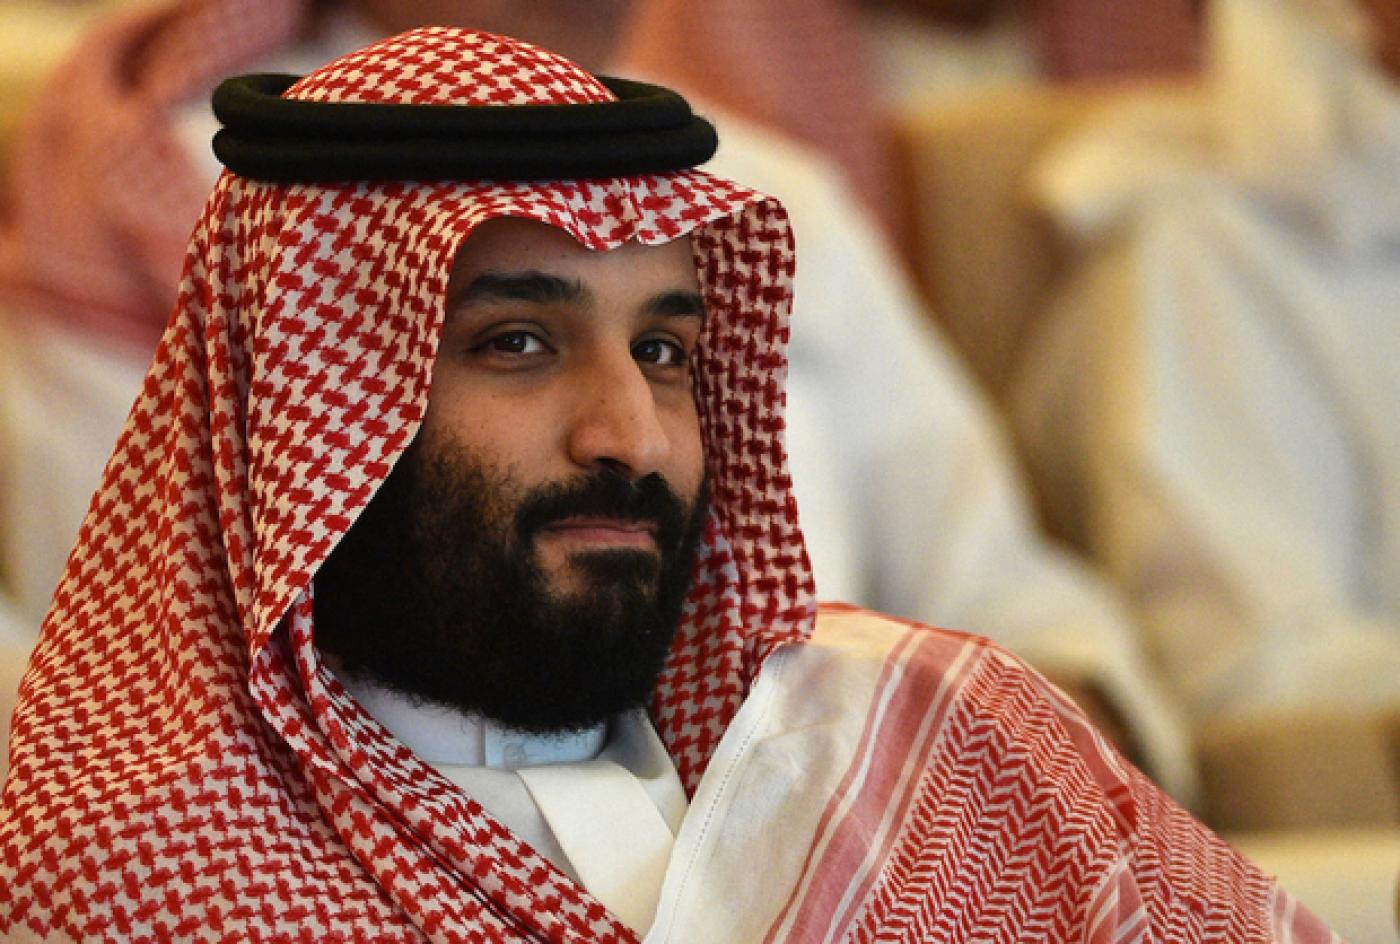 Mohammed bin Salman is the de facto ruler of Saudi Arabia